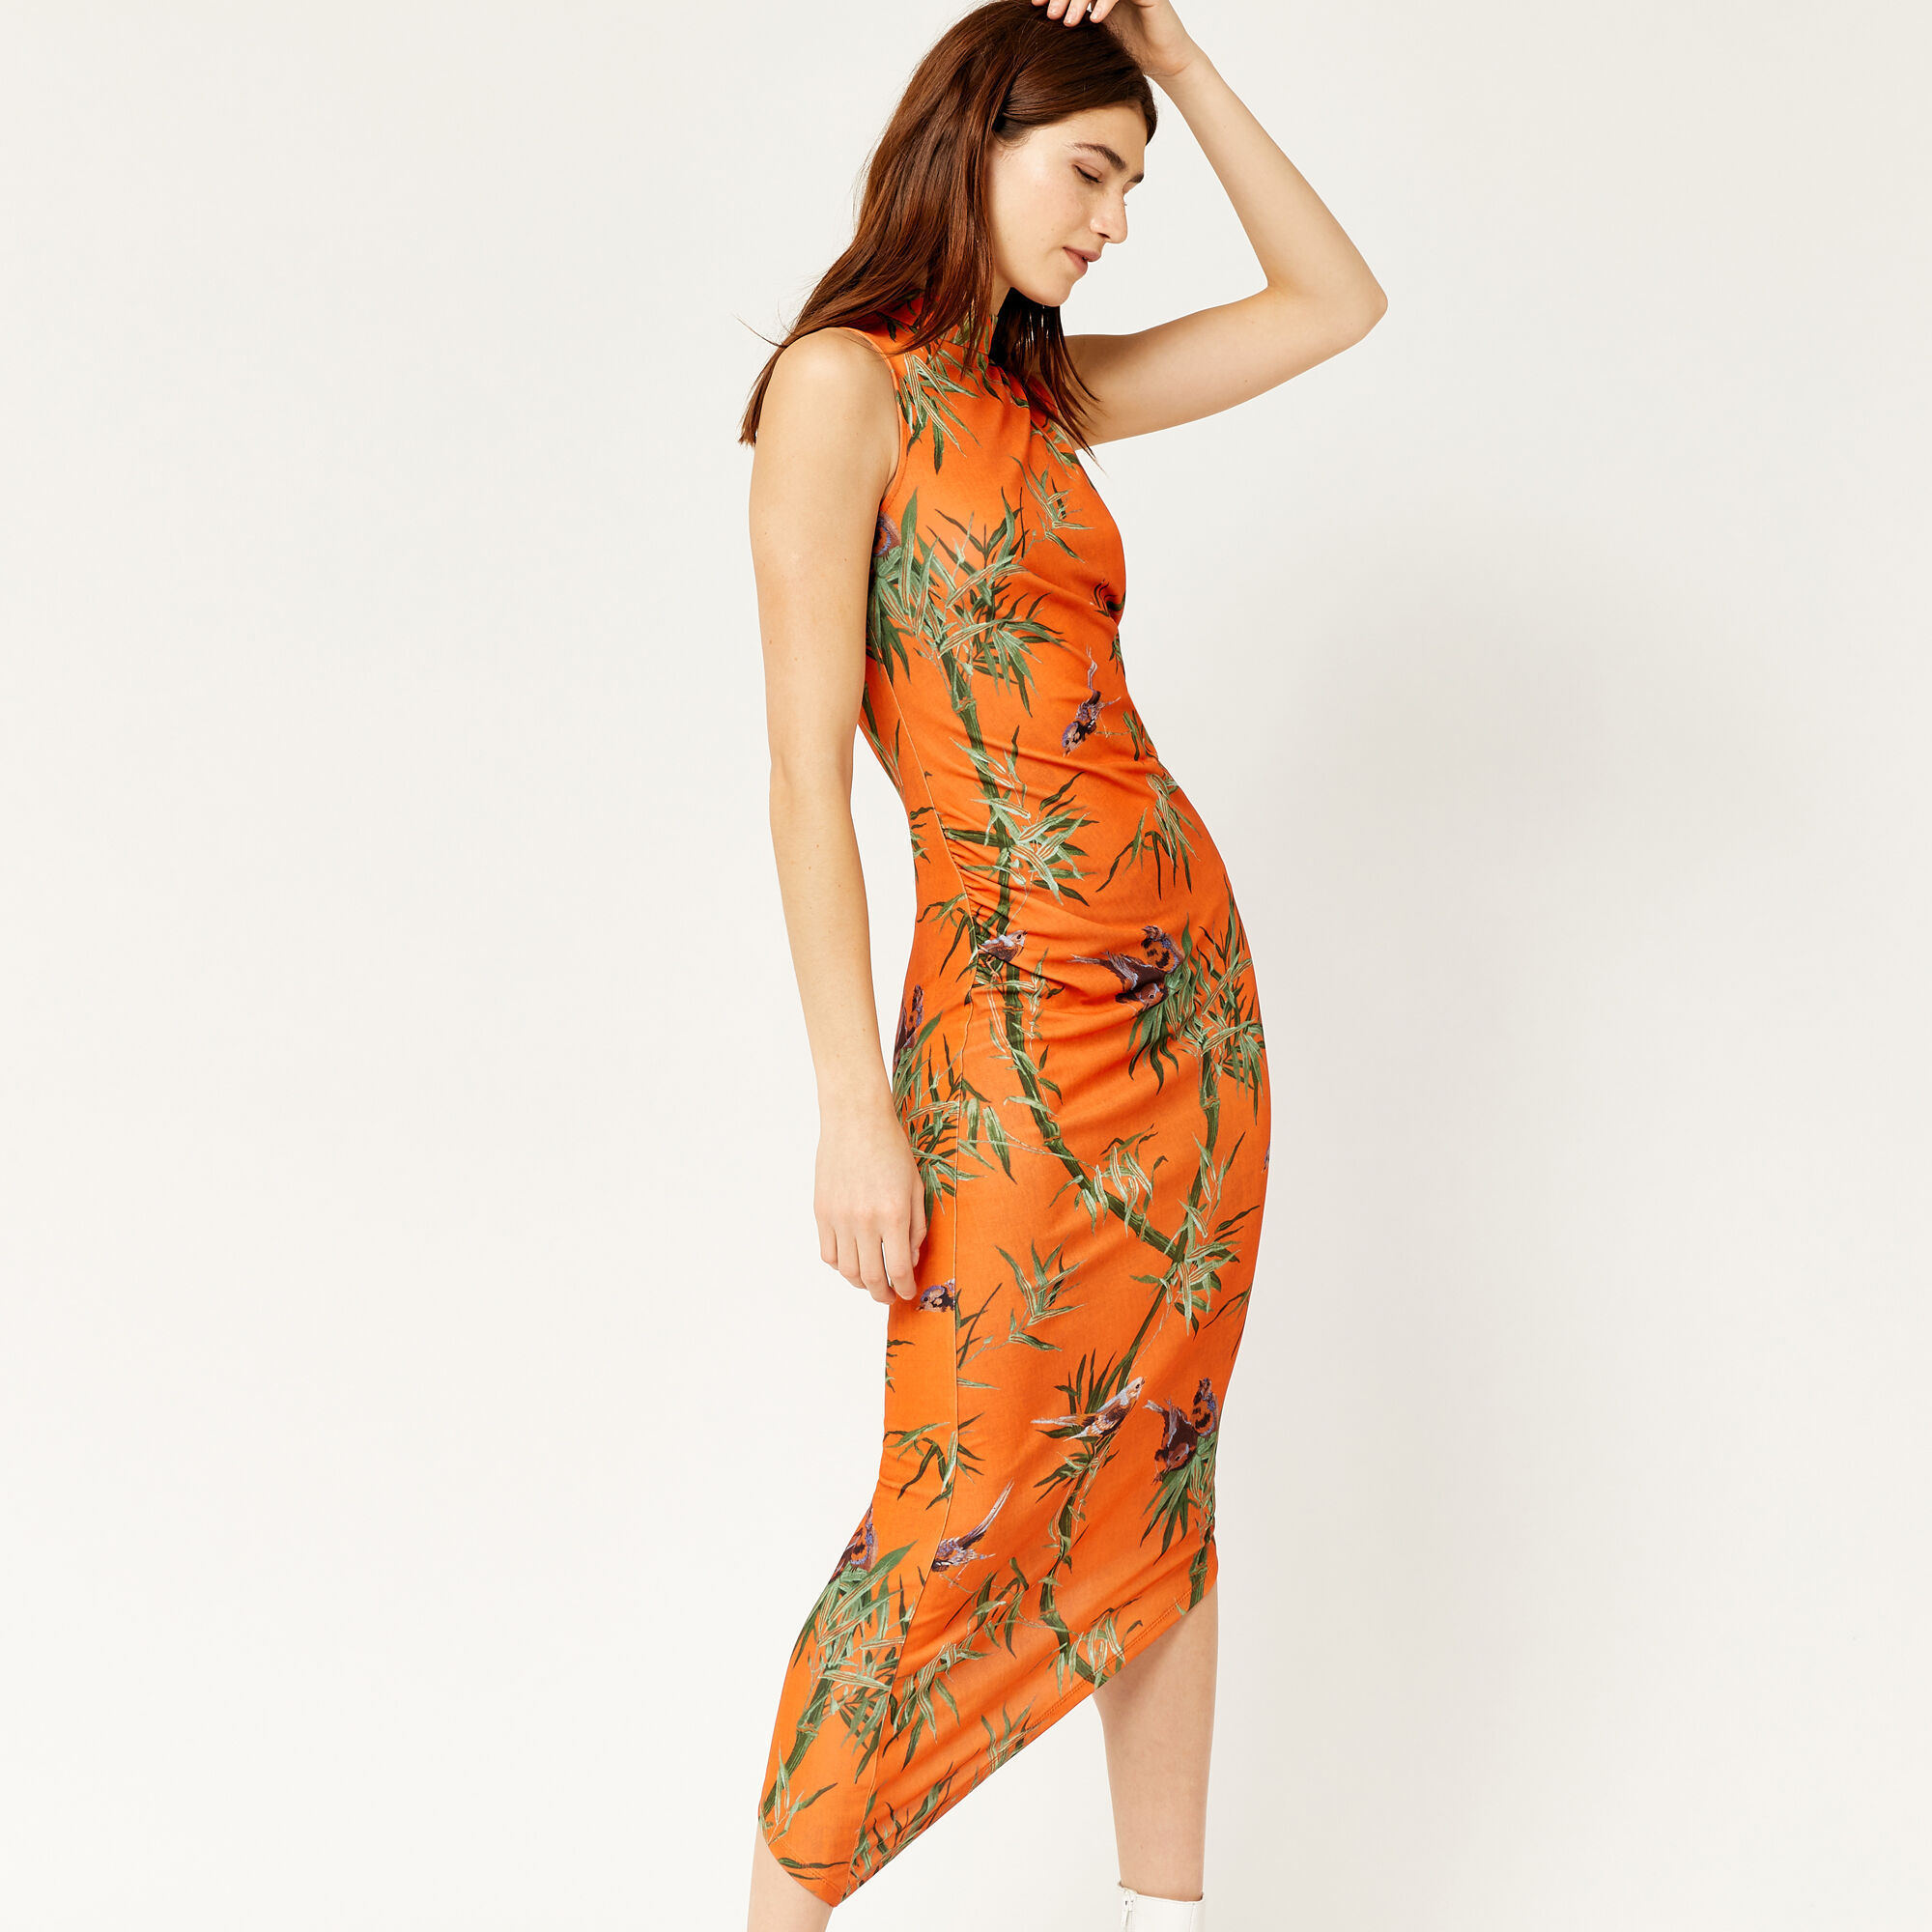 Warehouse, SONGBIRD ASYMMETRIC DRESS Orange 1